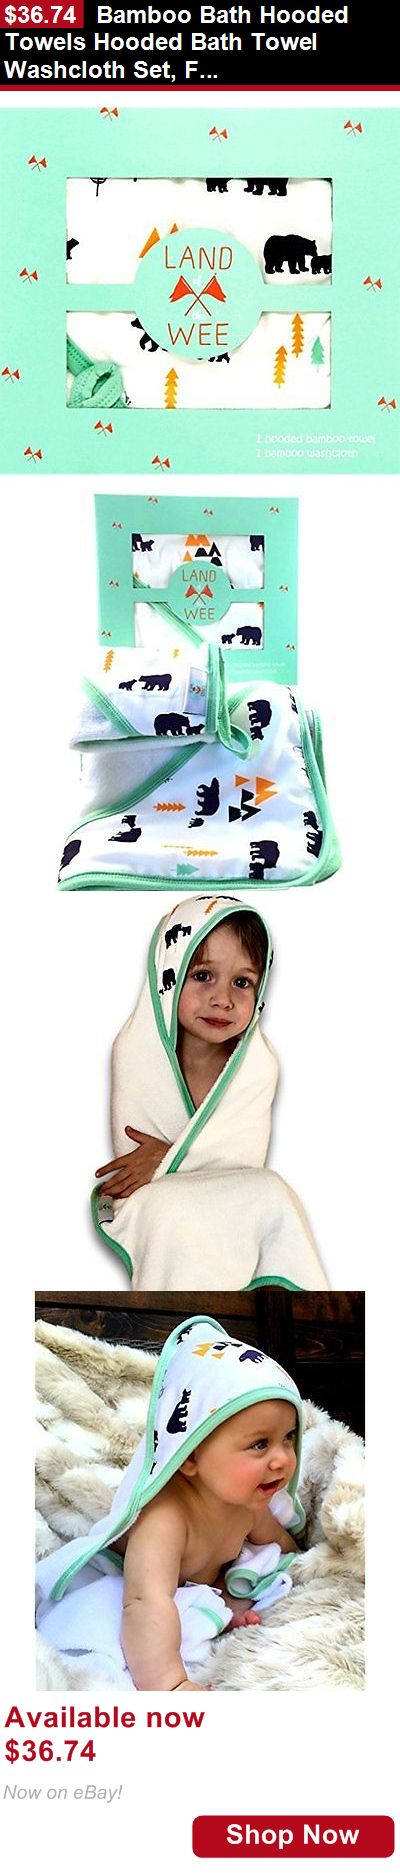 Baby Towels And Washcloths: Bamboo Bath Hooded Towels Hooded Bath Towel Washcloth Set, For Baby To Toddler BUY IT NOW ONLY: $36.74